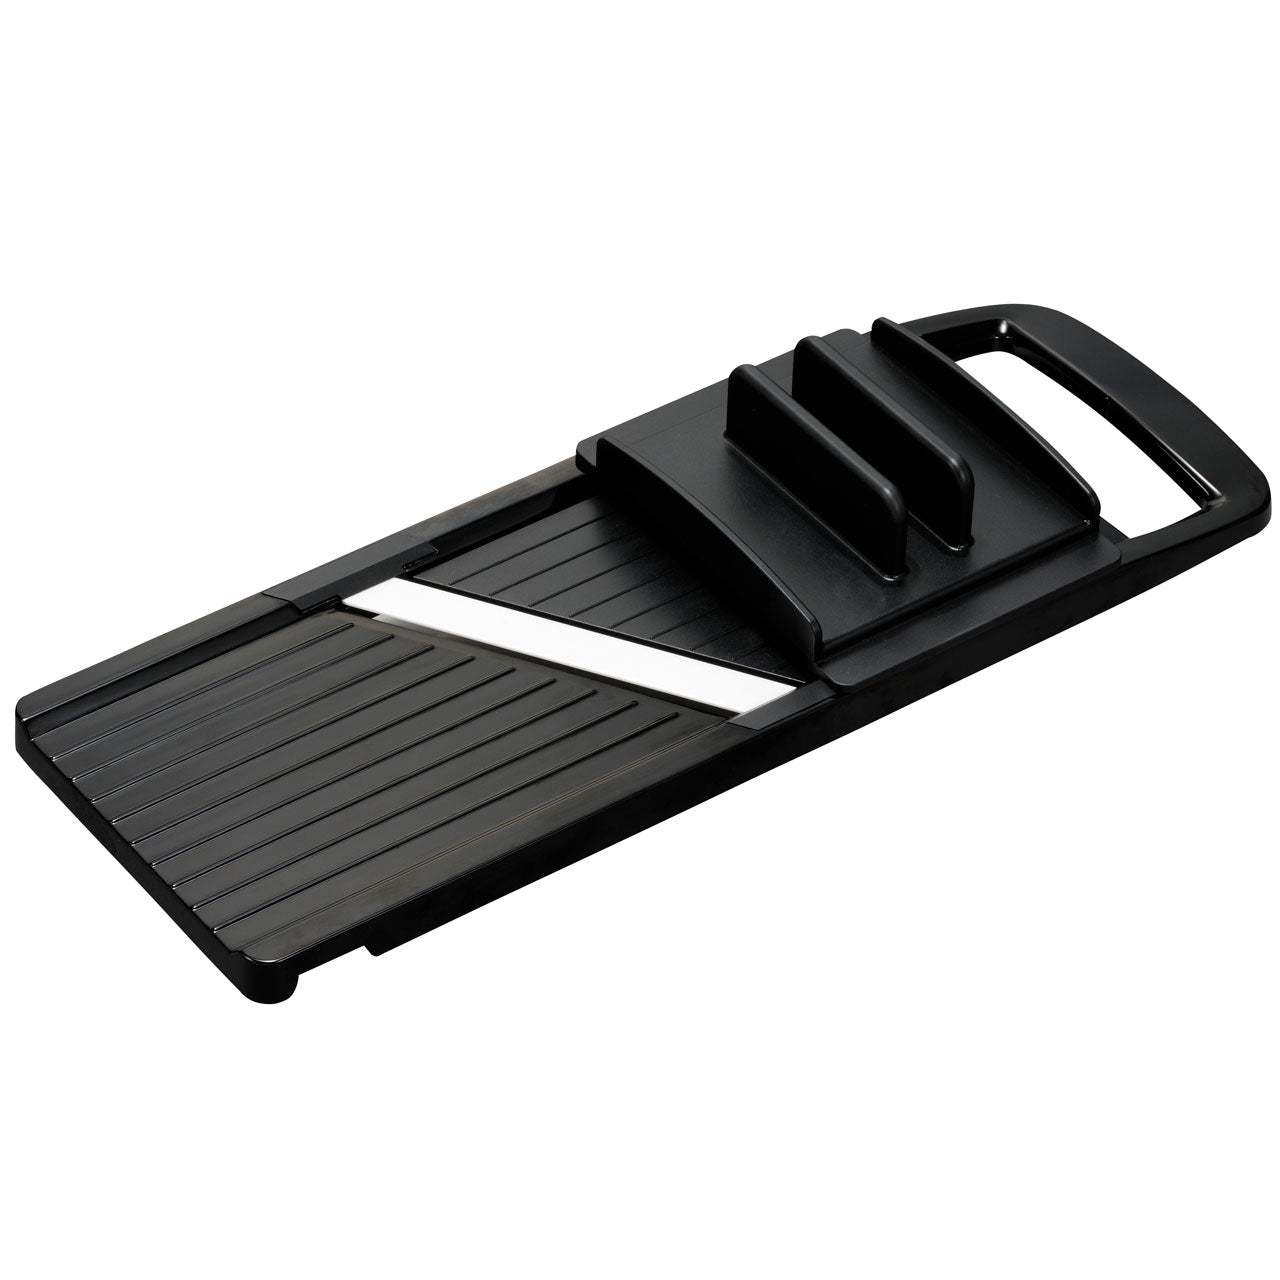 Kyocera Advanced Ceramic Wide Mandoline Slicer with 4-Thickness Adjustable Dial Black CSN-402